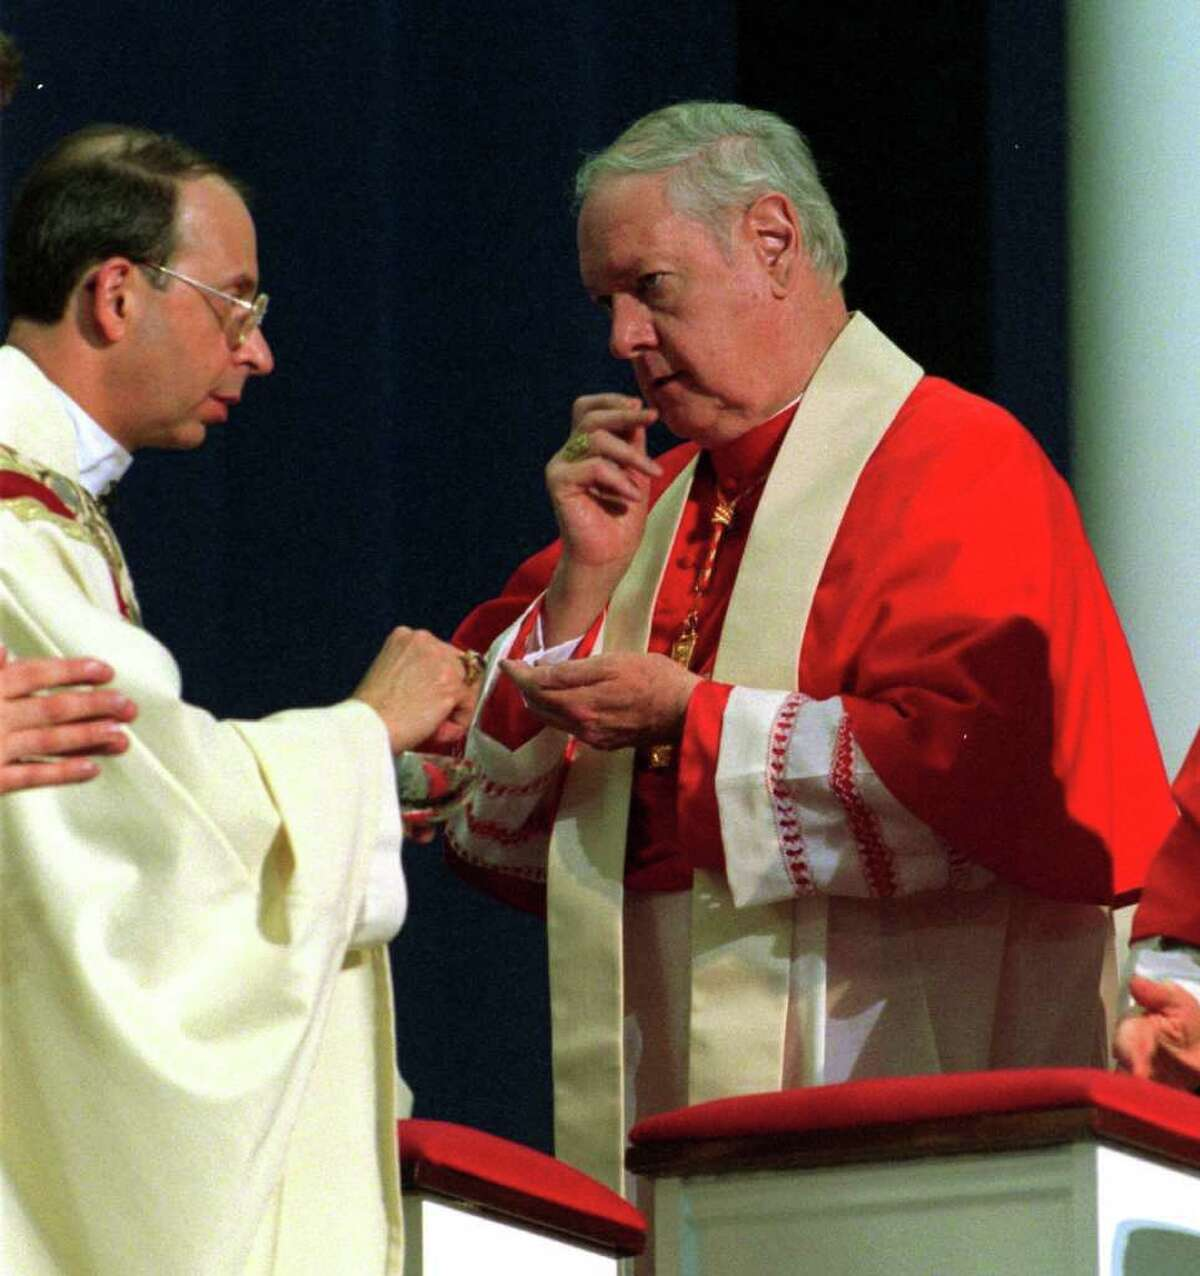 Cardinal Edward Michael Egan receives communion from his succesor Bishop William E. Lori during Lori's installation as the fourth Bishop of Bridgeport at Sacred Heart University, in Fairfield, Conn. on March 19th, 2001. In the recent edition of Connecticut Magazine Egan claims that while bishop in Bridgeport, Conn. he did nothing wrong regarding abuse allegation against priests in the diocese and in fact never had a case of alleged abuse while he was bishop. In the interview Egan also expressed regret for the apology he made regarding the priest scandal here.